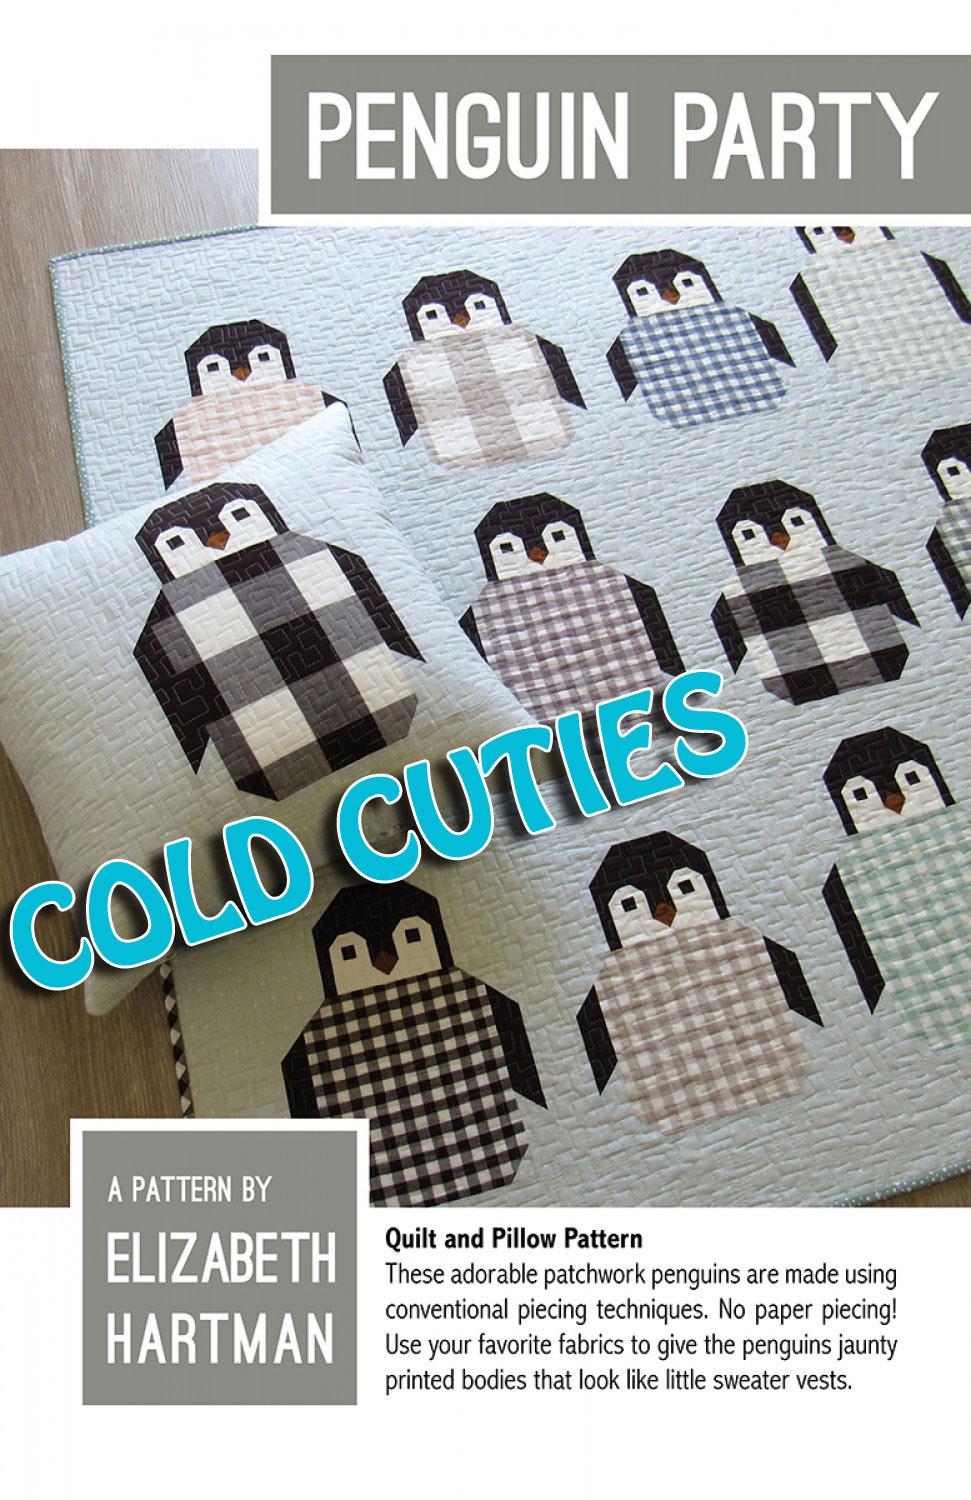 Penguin-Party-quilt-sewing-pattern-Elizabeth-Hartman-3